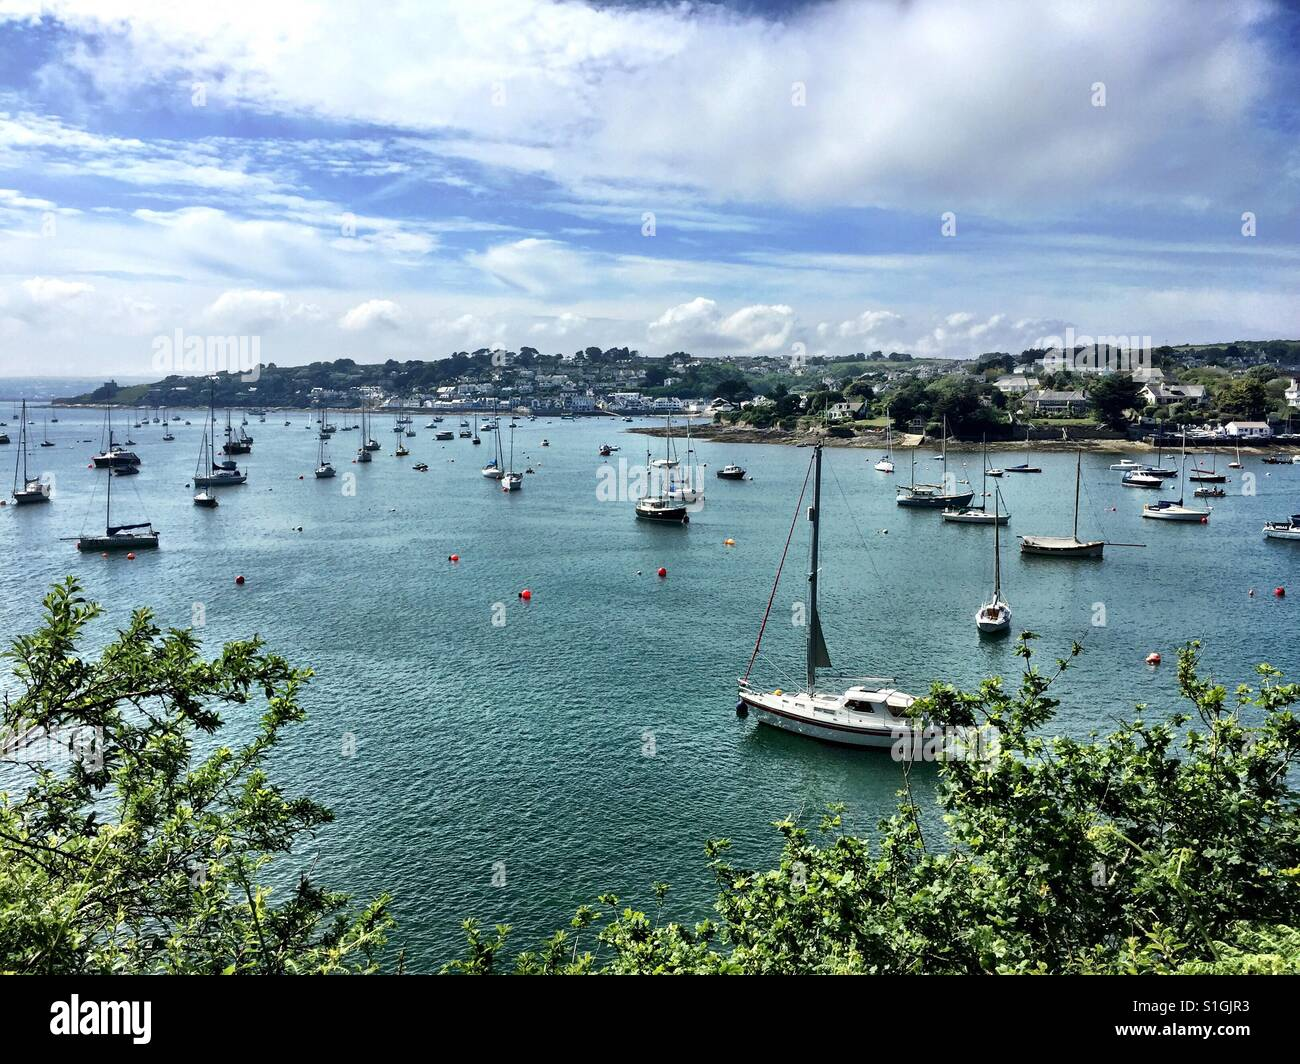 The view from Place looking to St Mawes in Cornwall. Beautiful part of the world. - Stock Image